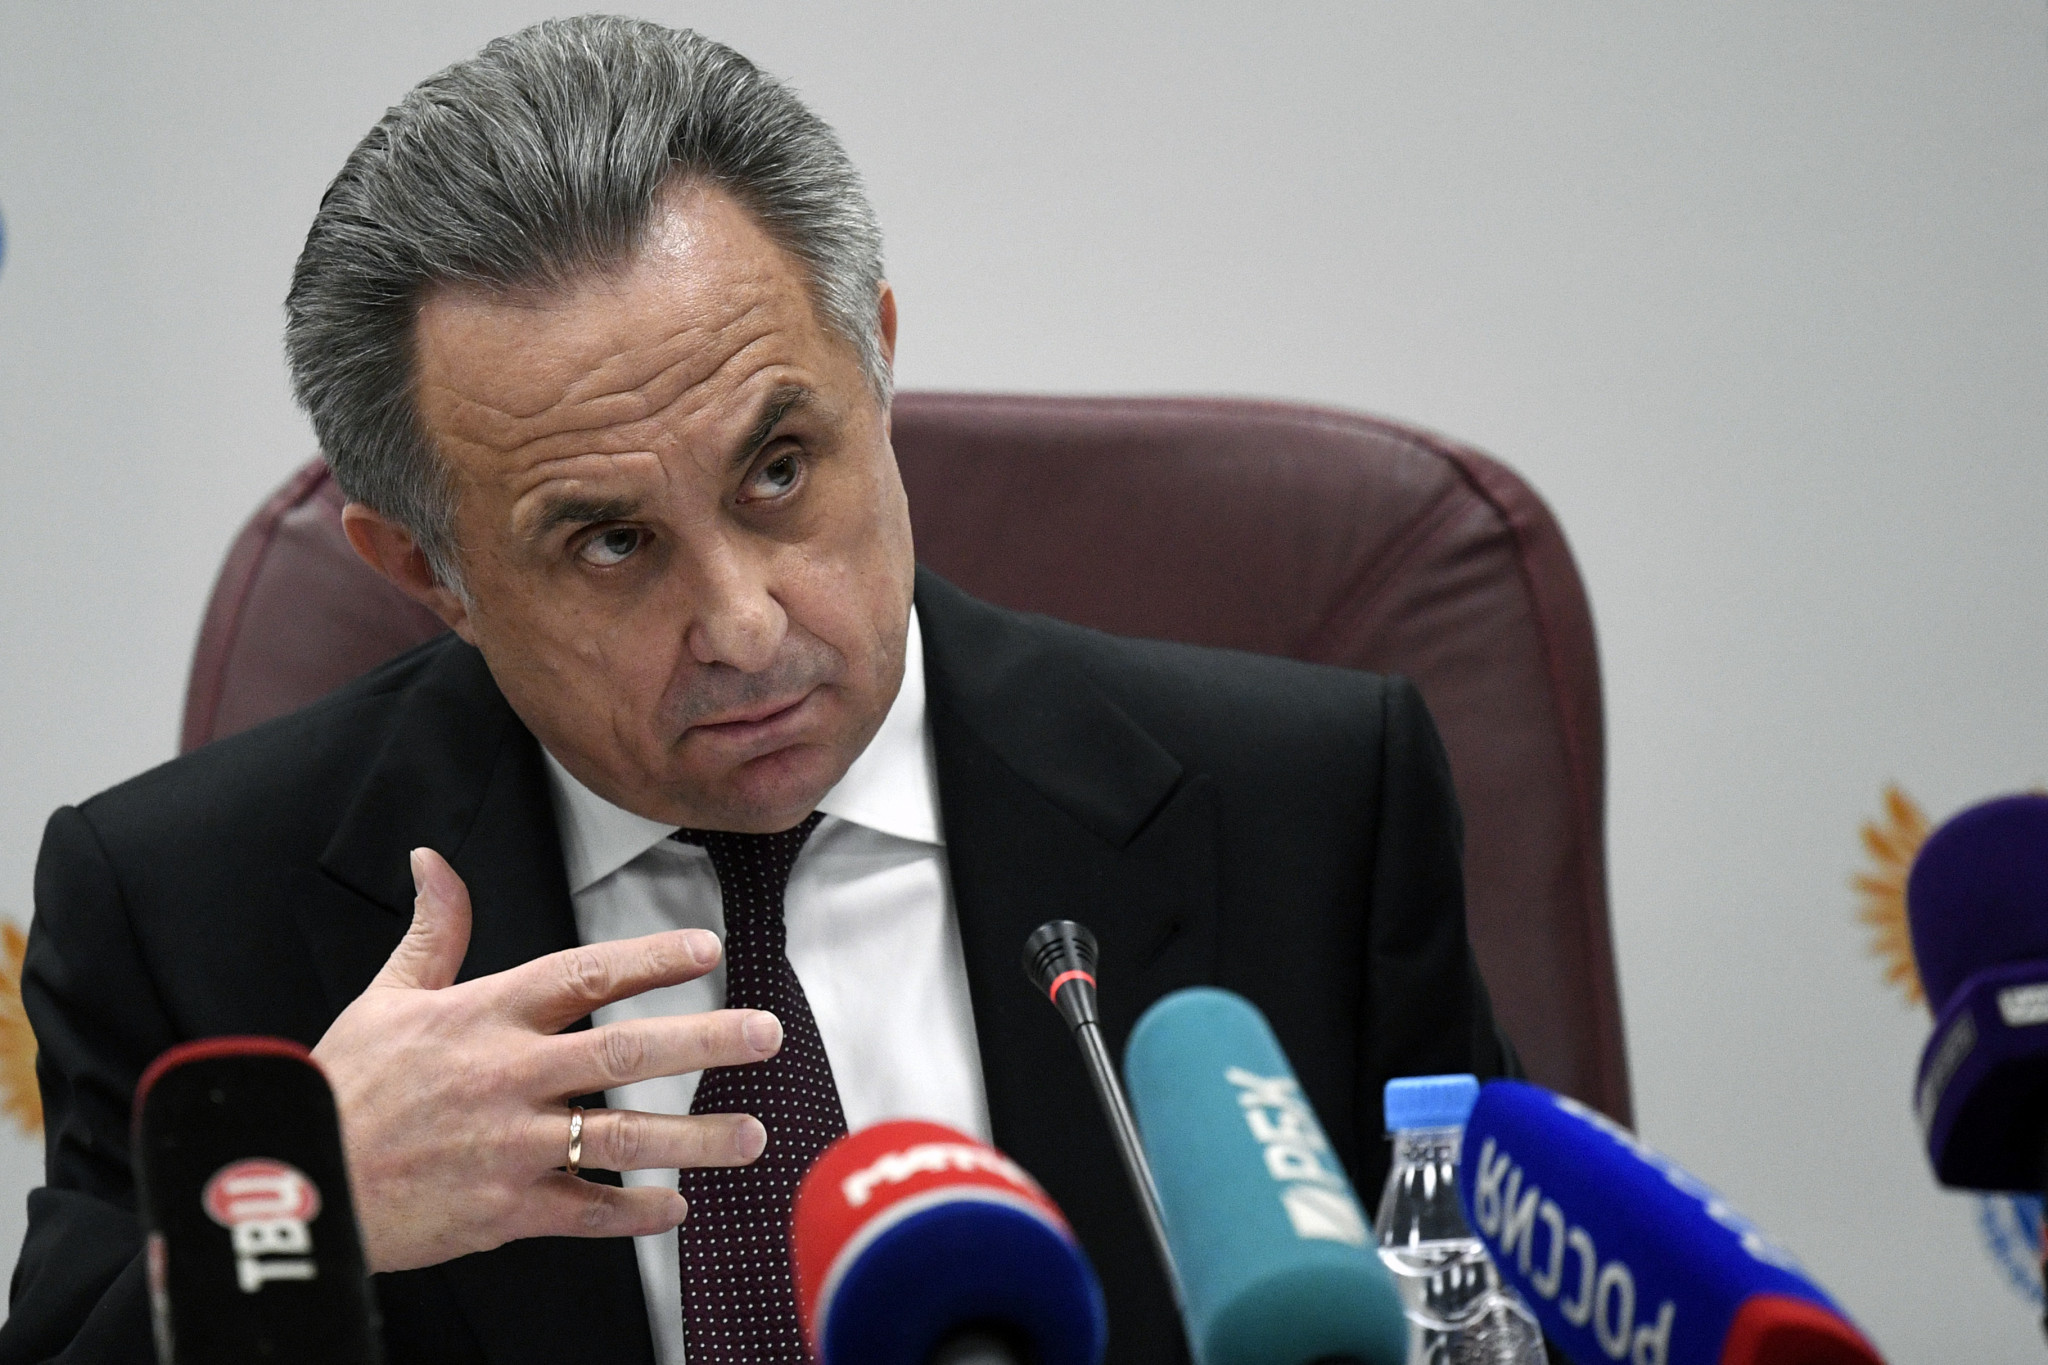 Vitaly Mutko has been replaced as Deputy Prime Minister responsible for sport by Olga Golodets in the reshuffle of the Russian Government ©Getty Images